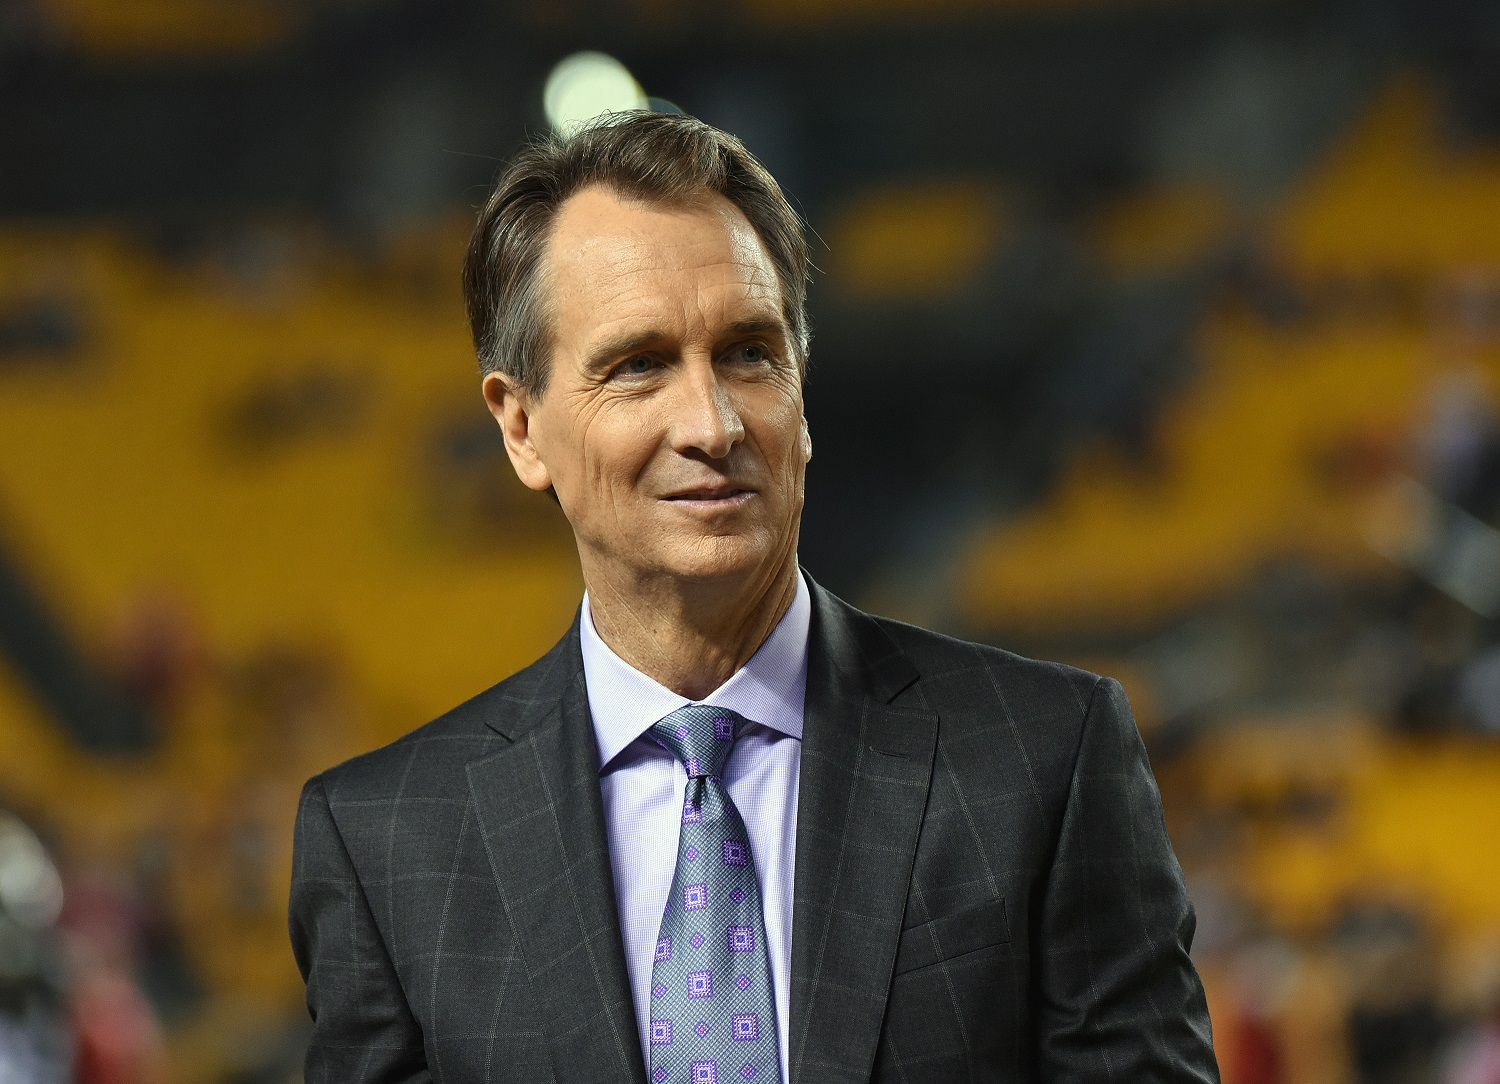 Cris Collinsworth Upset Quite a Few People by Dropping a Certain R-Word on 'Sunday Night Football'